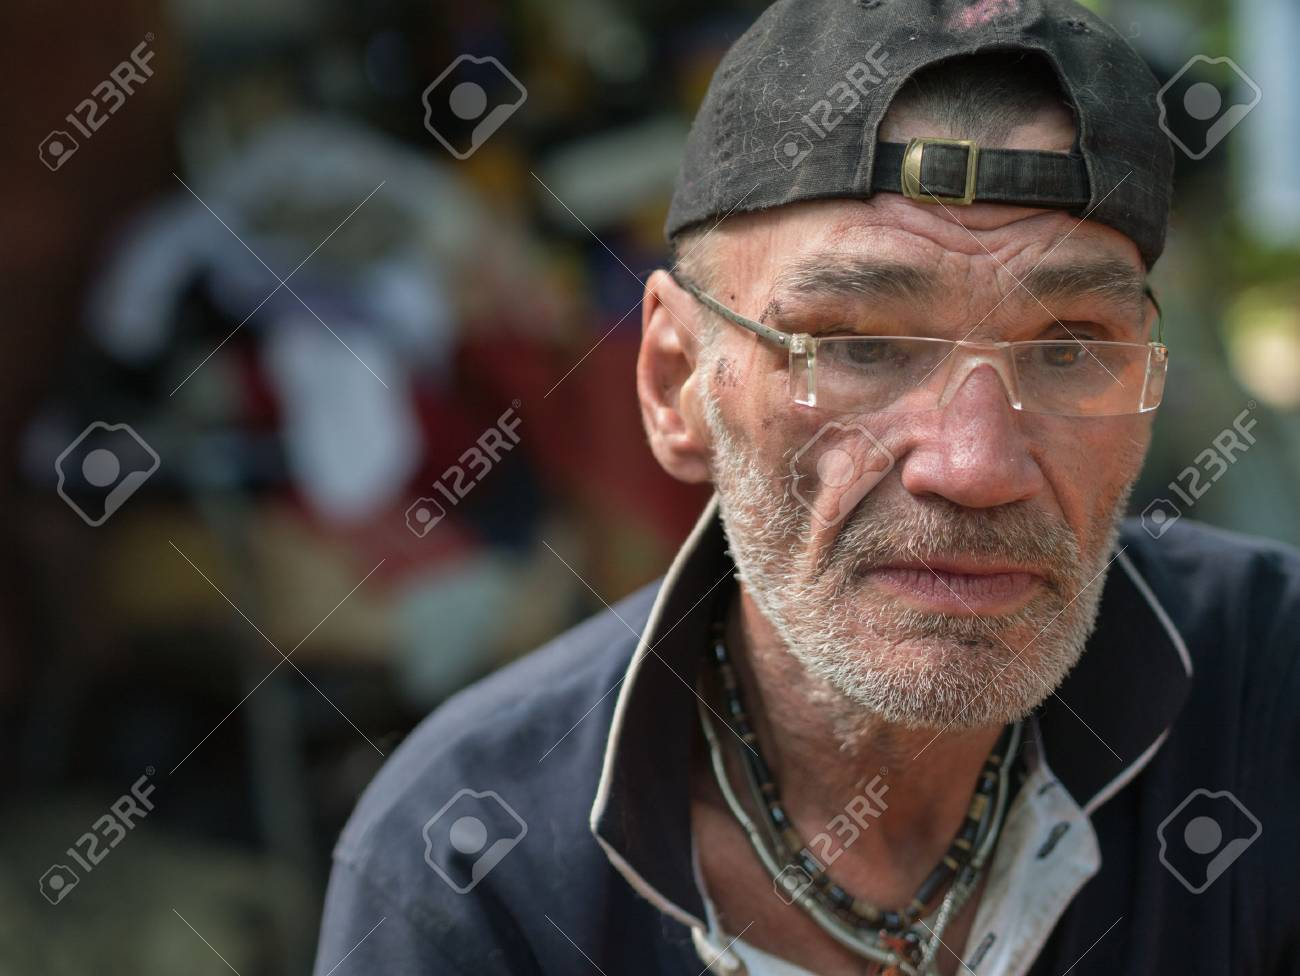 sad homeless man stock photo, picture and royalty free image. image